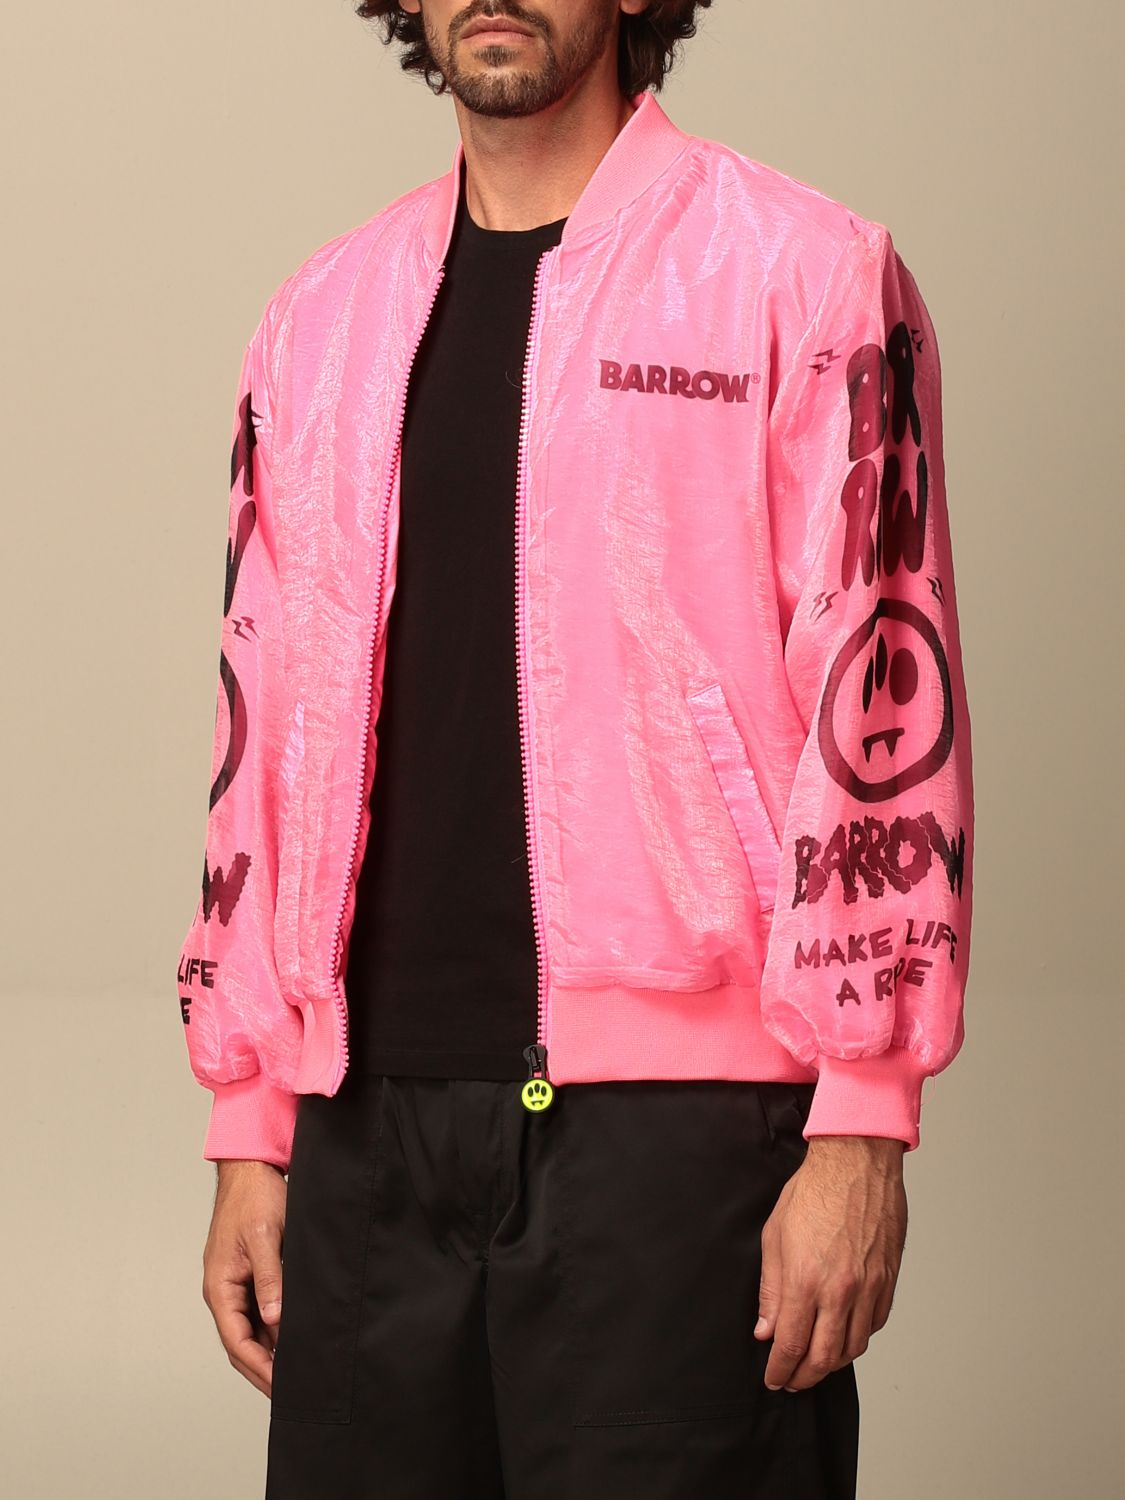 Jacket Barrow: Jacket men Barrow pink 3